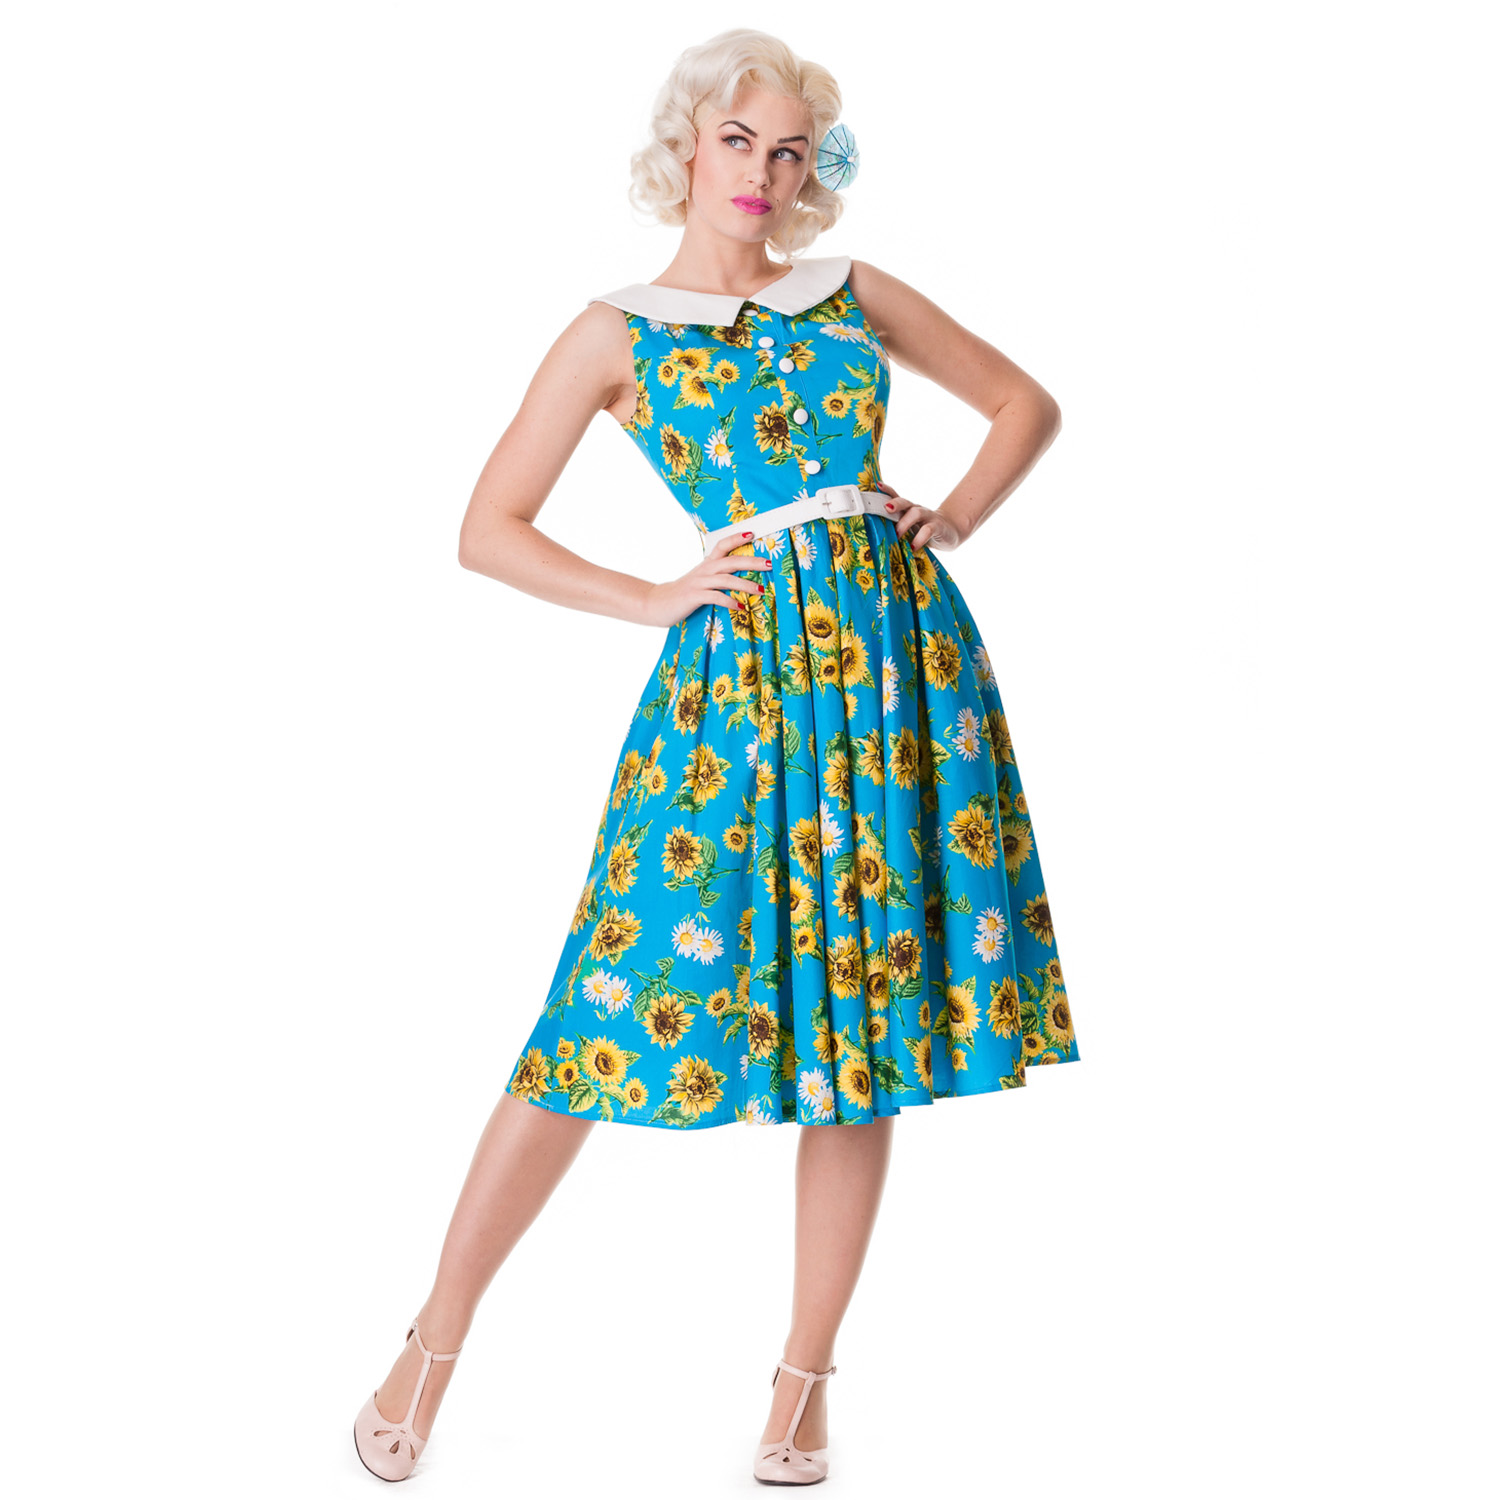 Fifties style dresses for sale uk